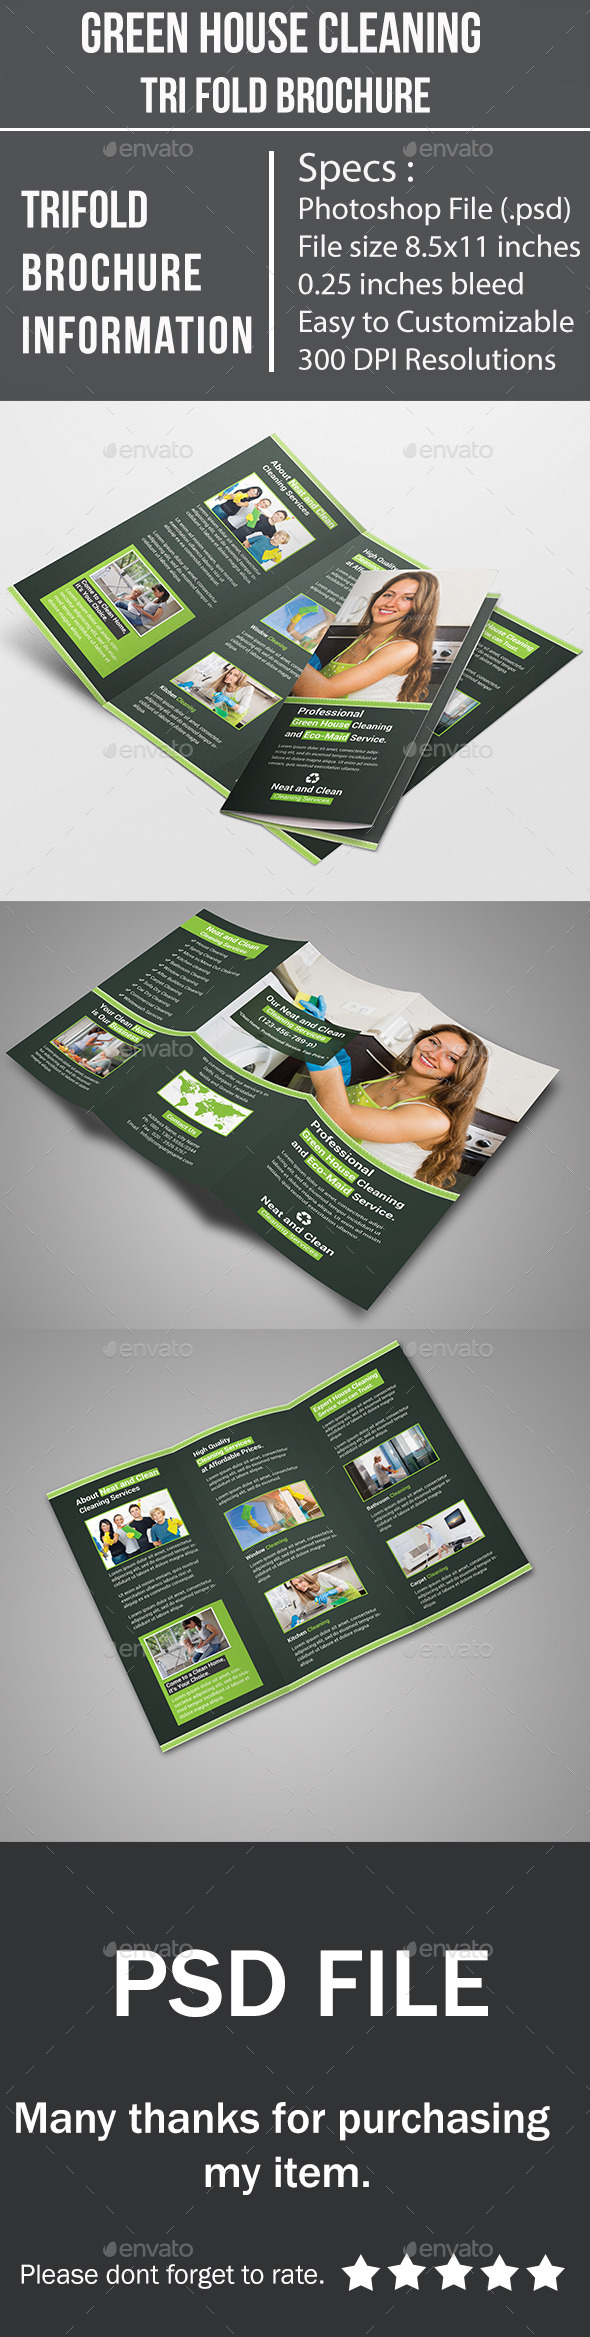 GraphicRiver Green House Cleaning Tri Fold Brochure 9654687